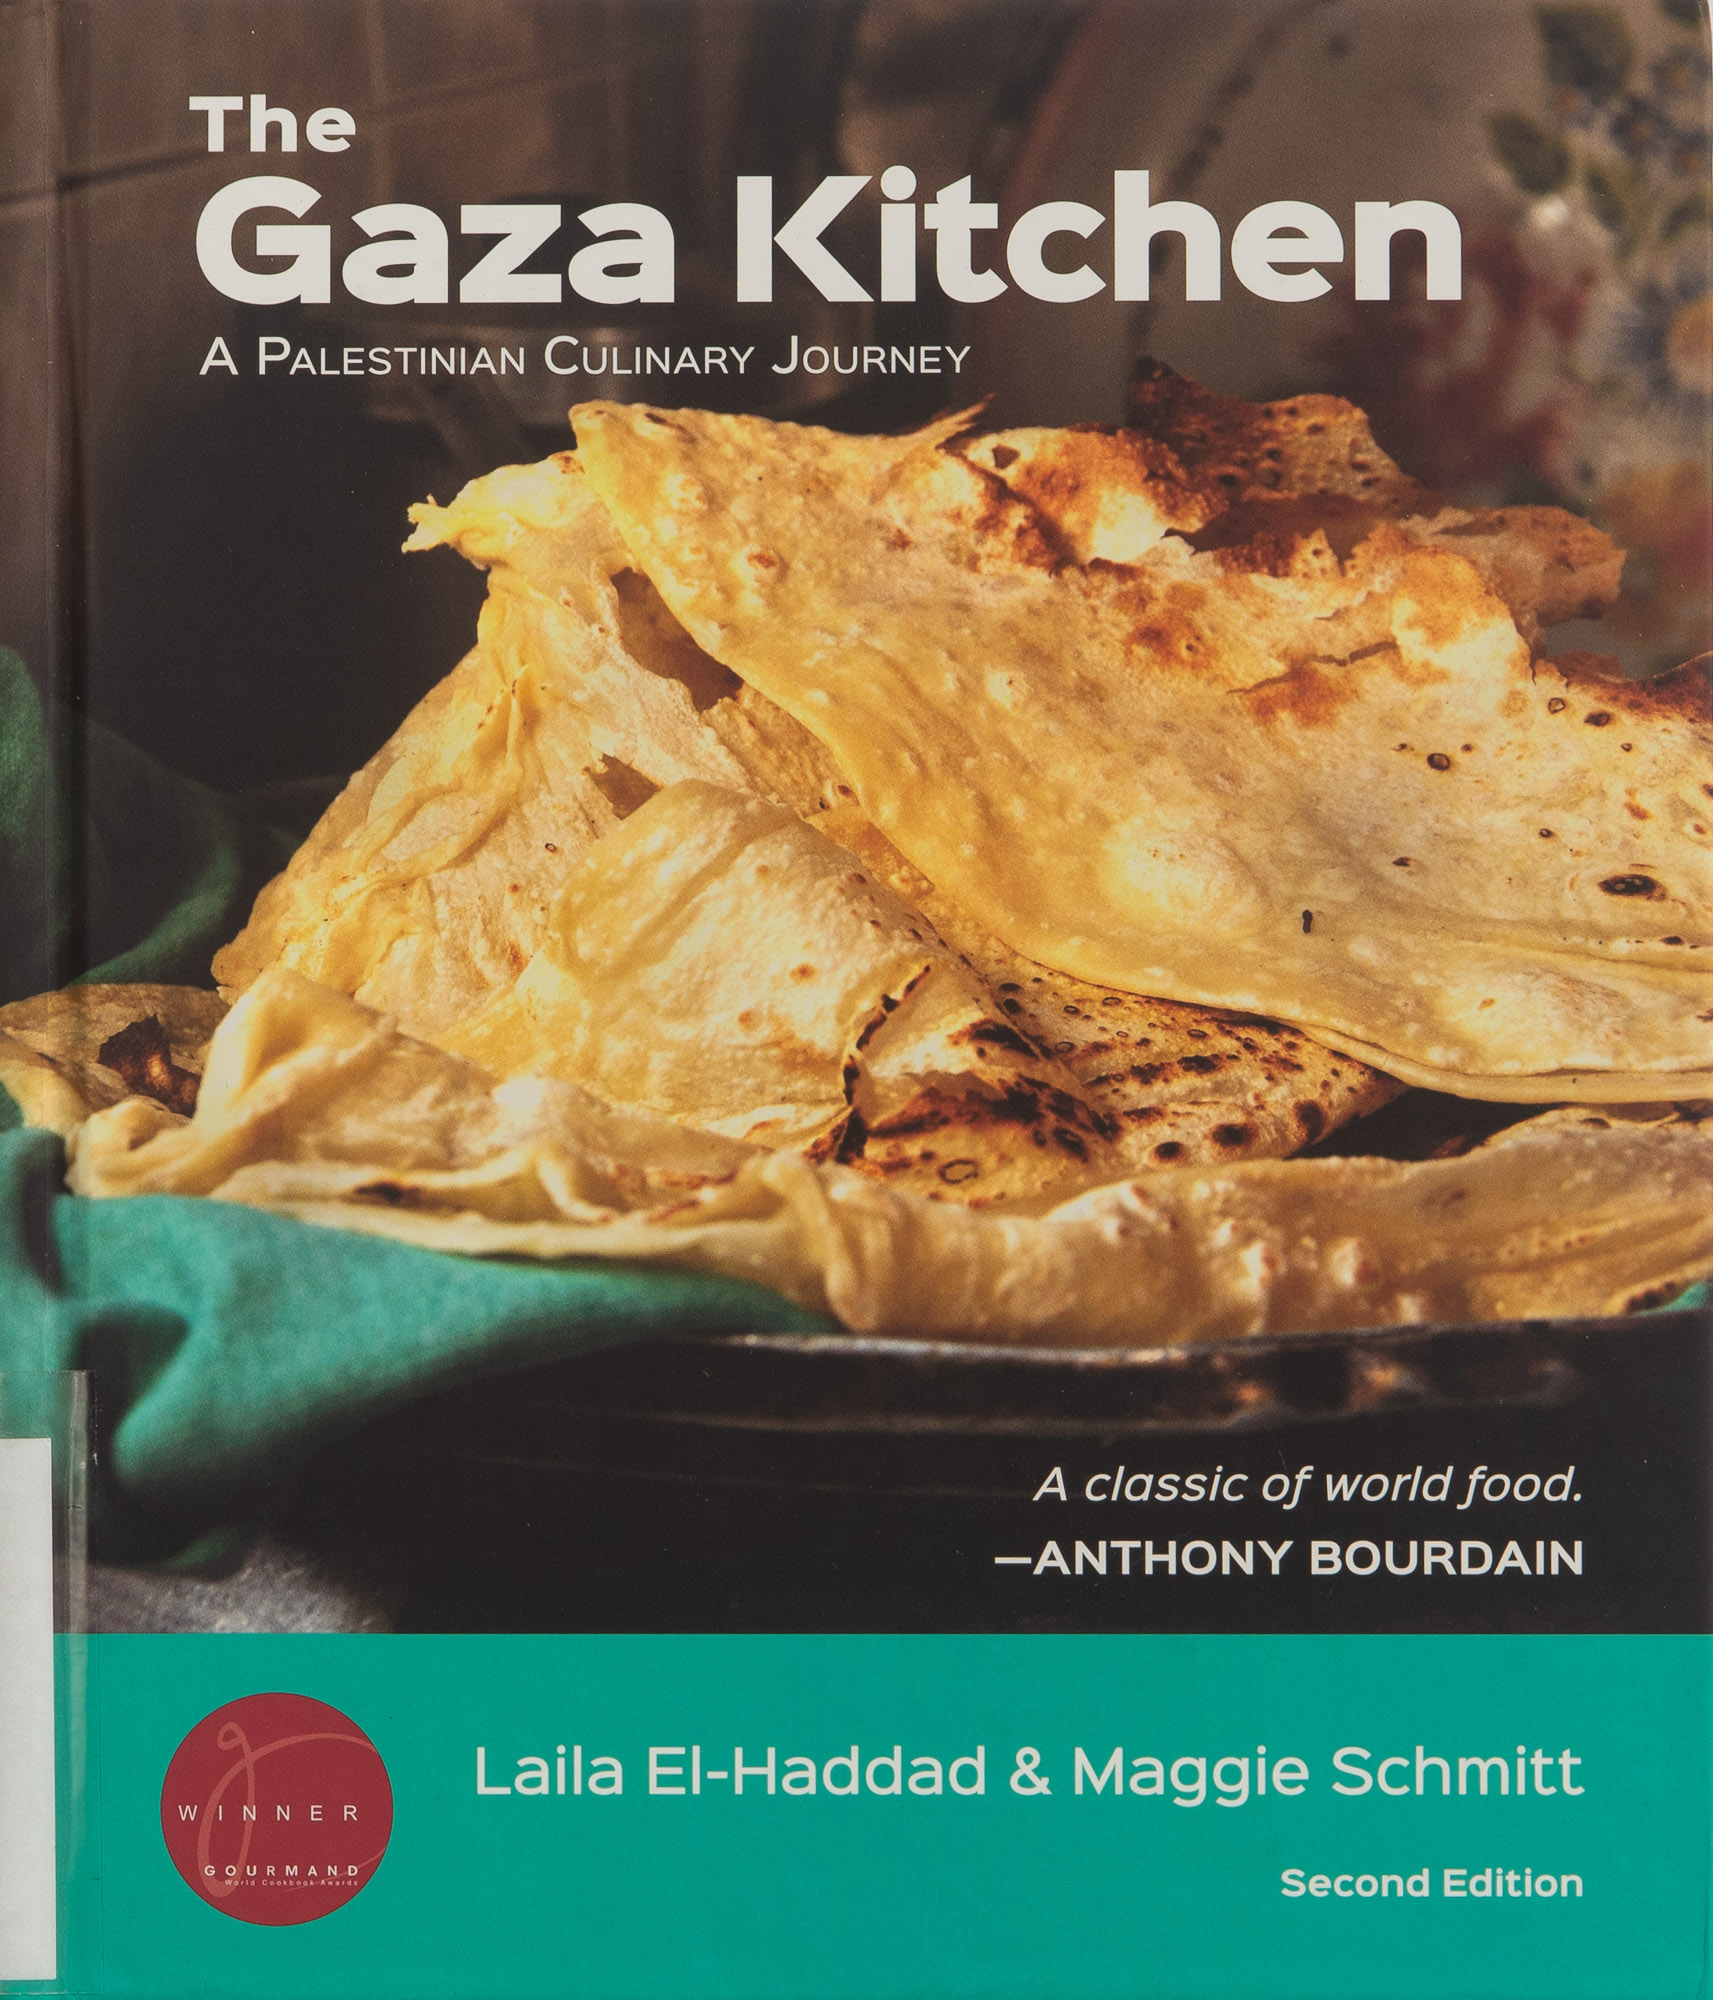 The cover of the cookbook The Gaza Kitchen: A Palestinian Culinary Journey